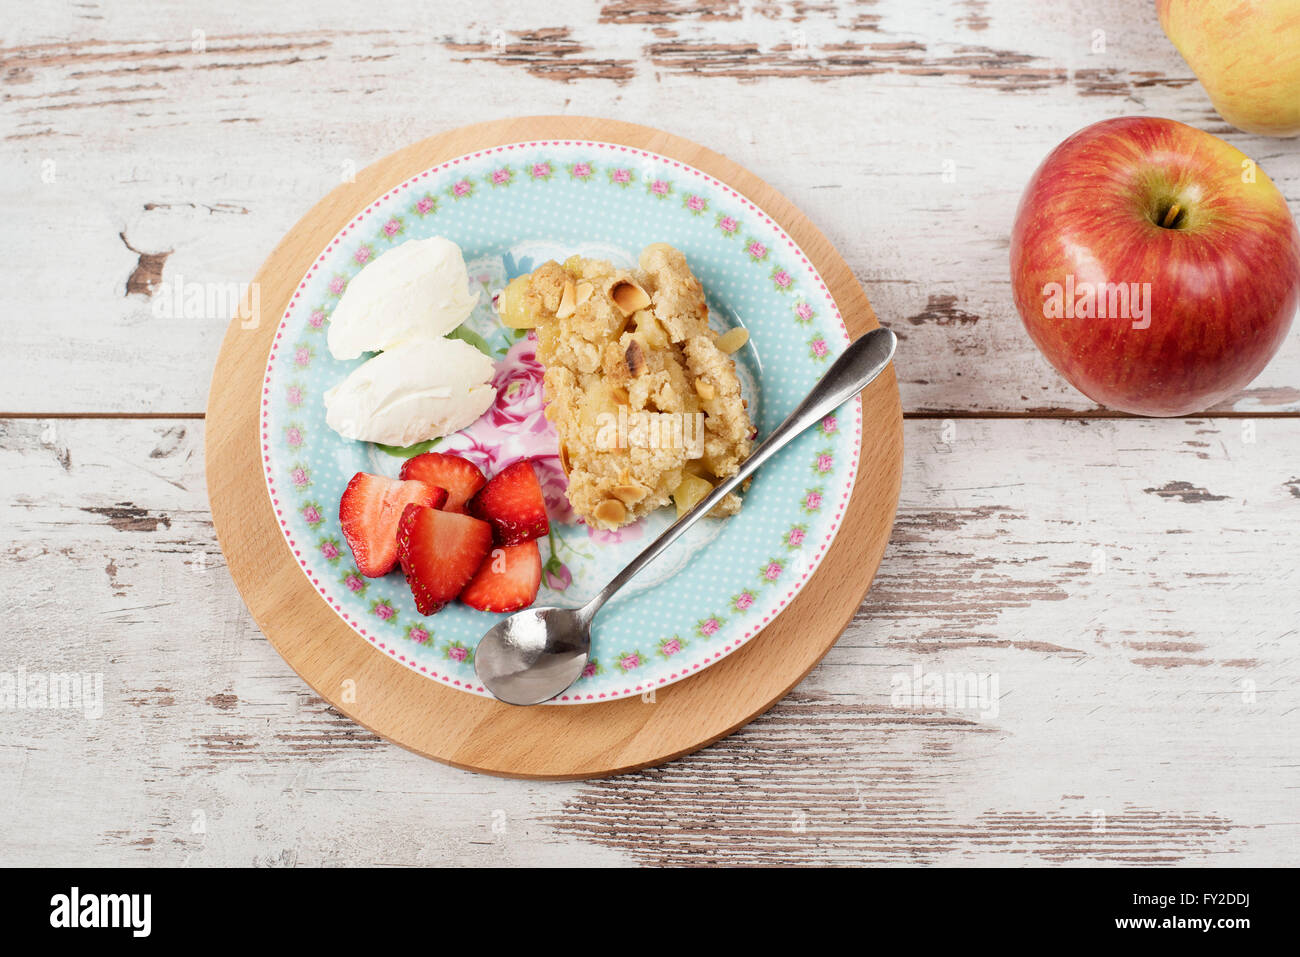 Apple crumble dessert with strawberries and vanilla cream on light rustic wooden background - Stock Image